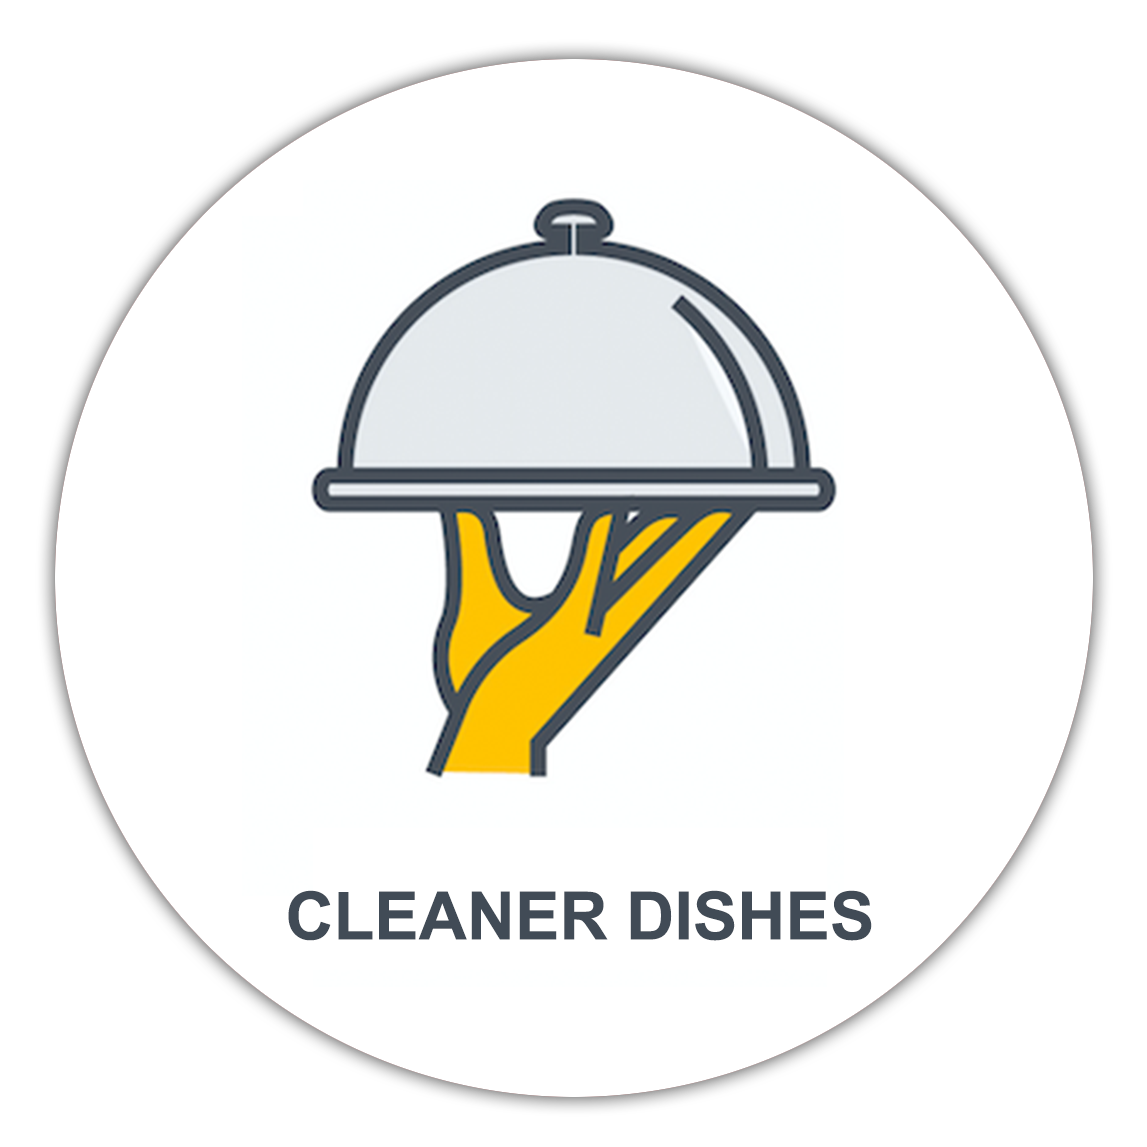 cleaner dishes with vital water company water